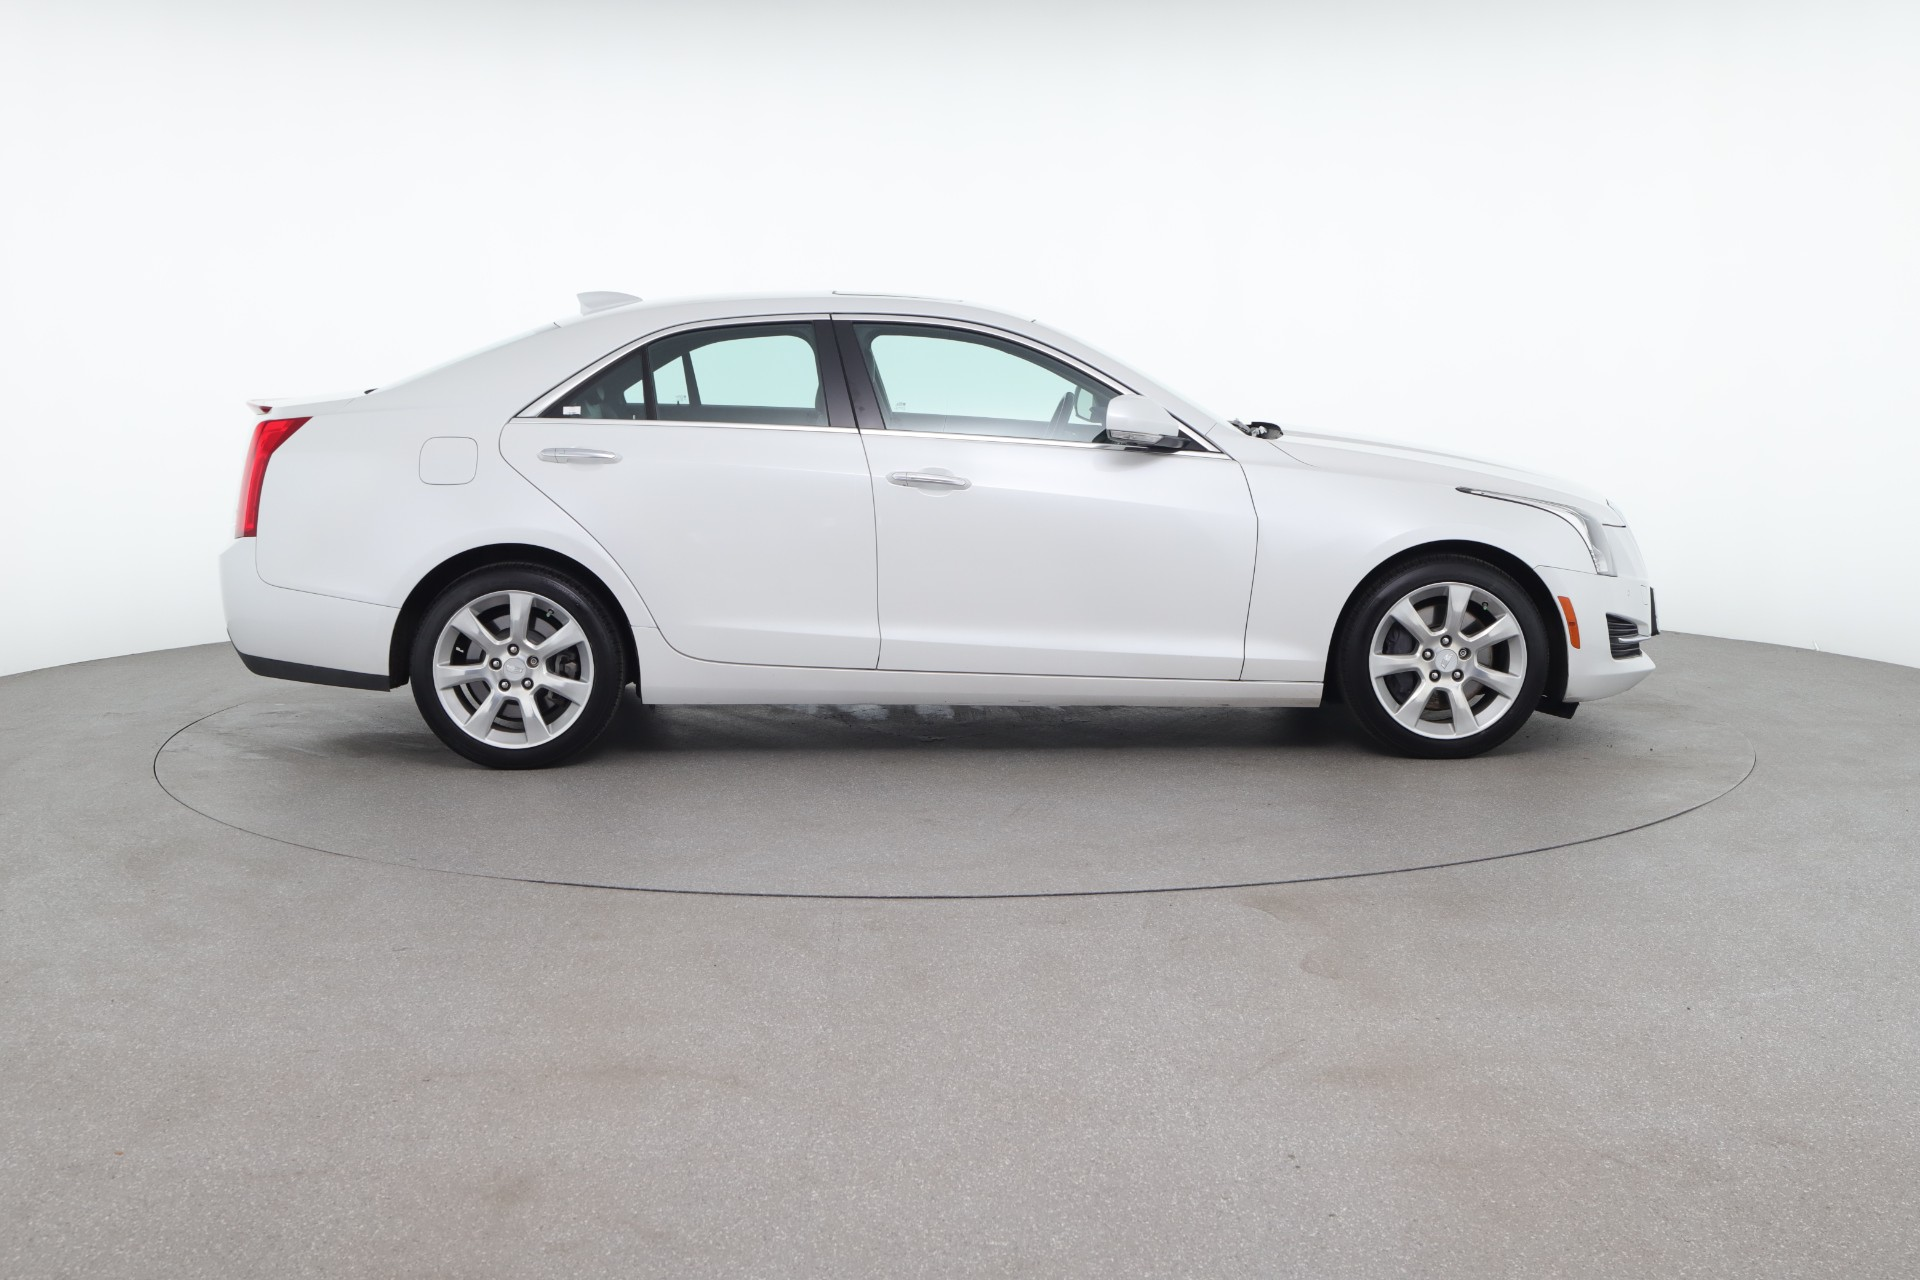 How Much Is A Cadillac? A Complete Guide On Prices And Features